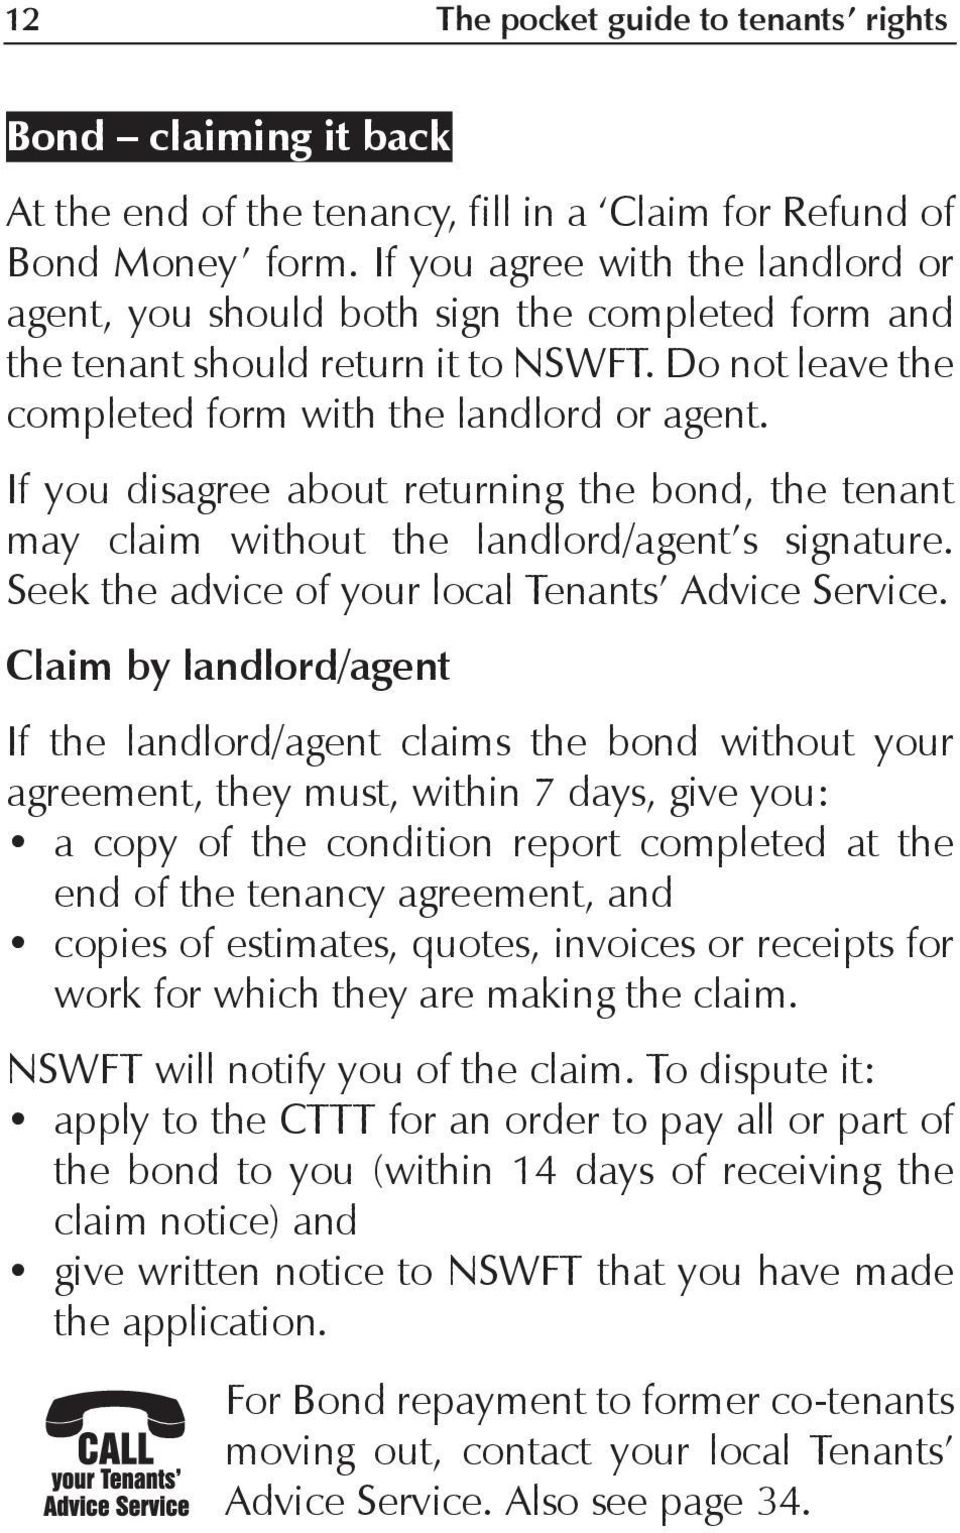 If you disagree about returning the bond, the tenant may claim without the landlord/agent s signature. Seek the advice of your local Tenants Advice Service.